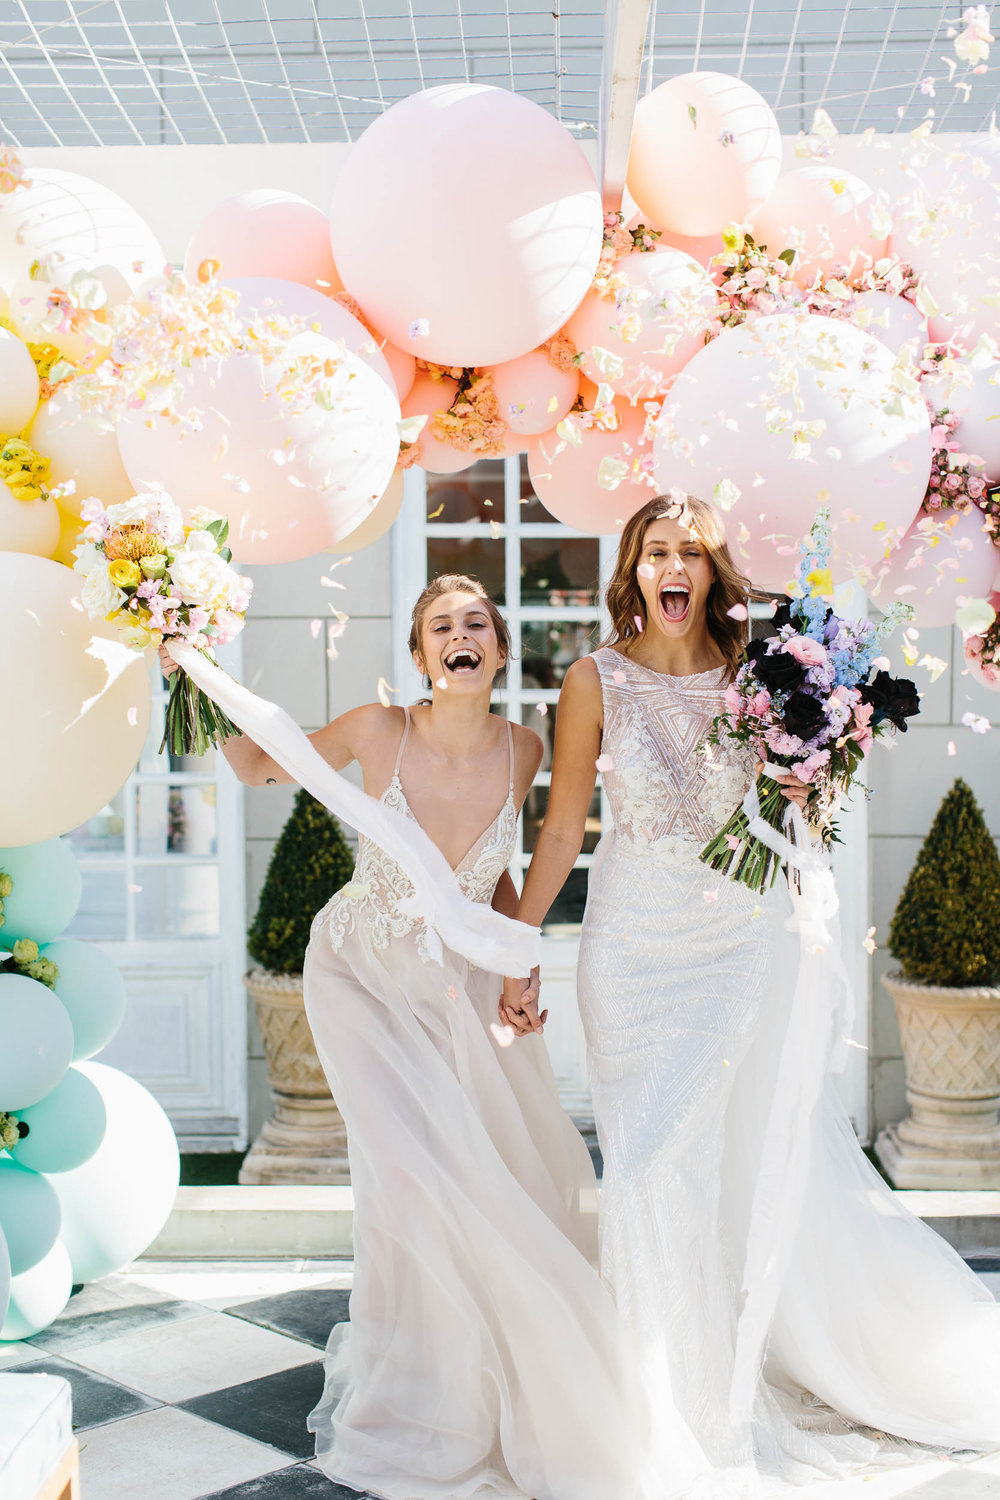 sweet wedding photos with balloons